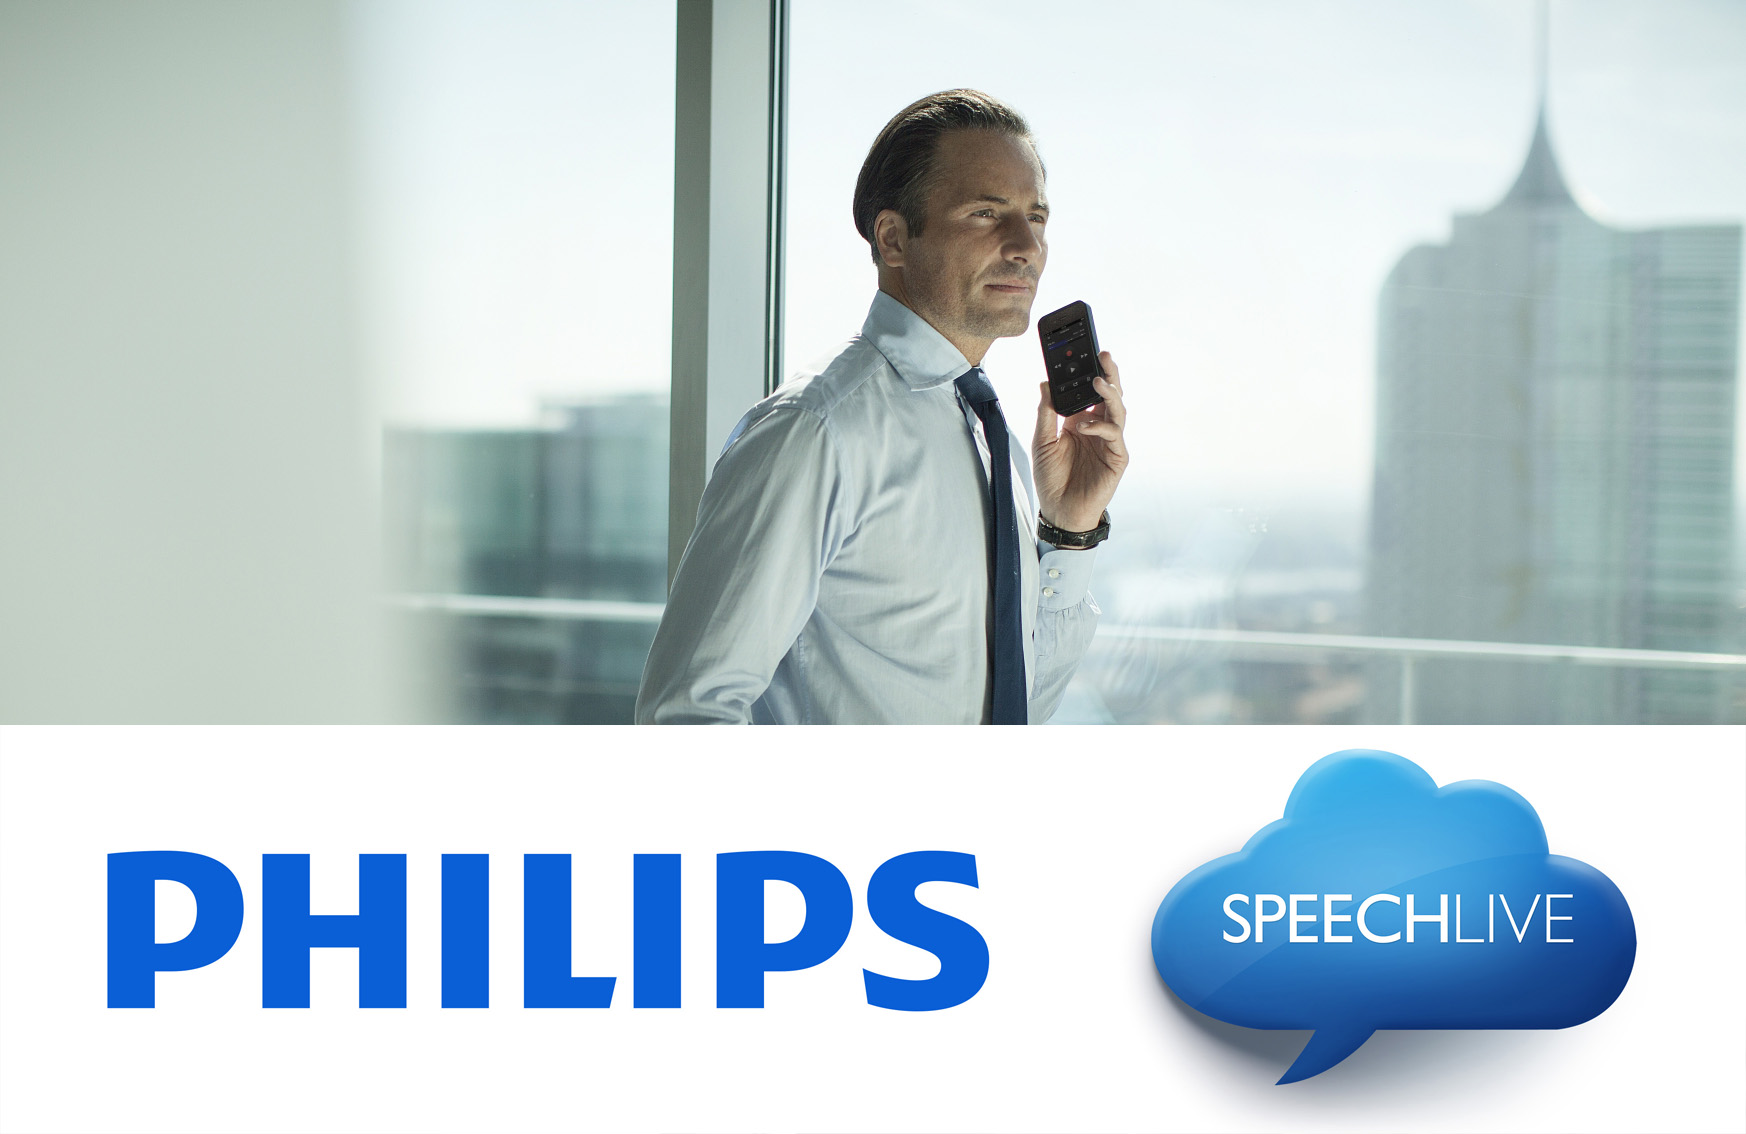 AppCheck: Philips SpeechLive